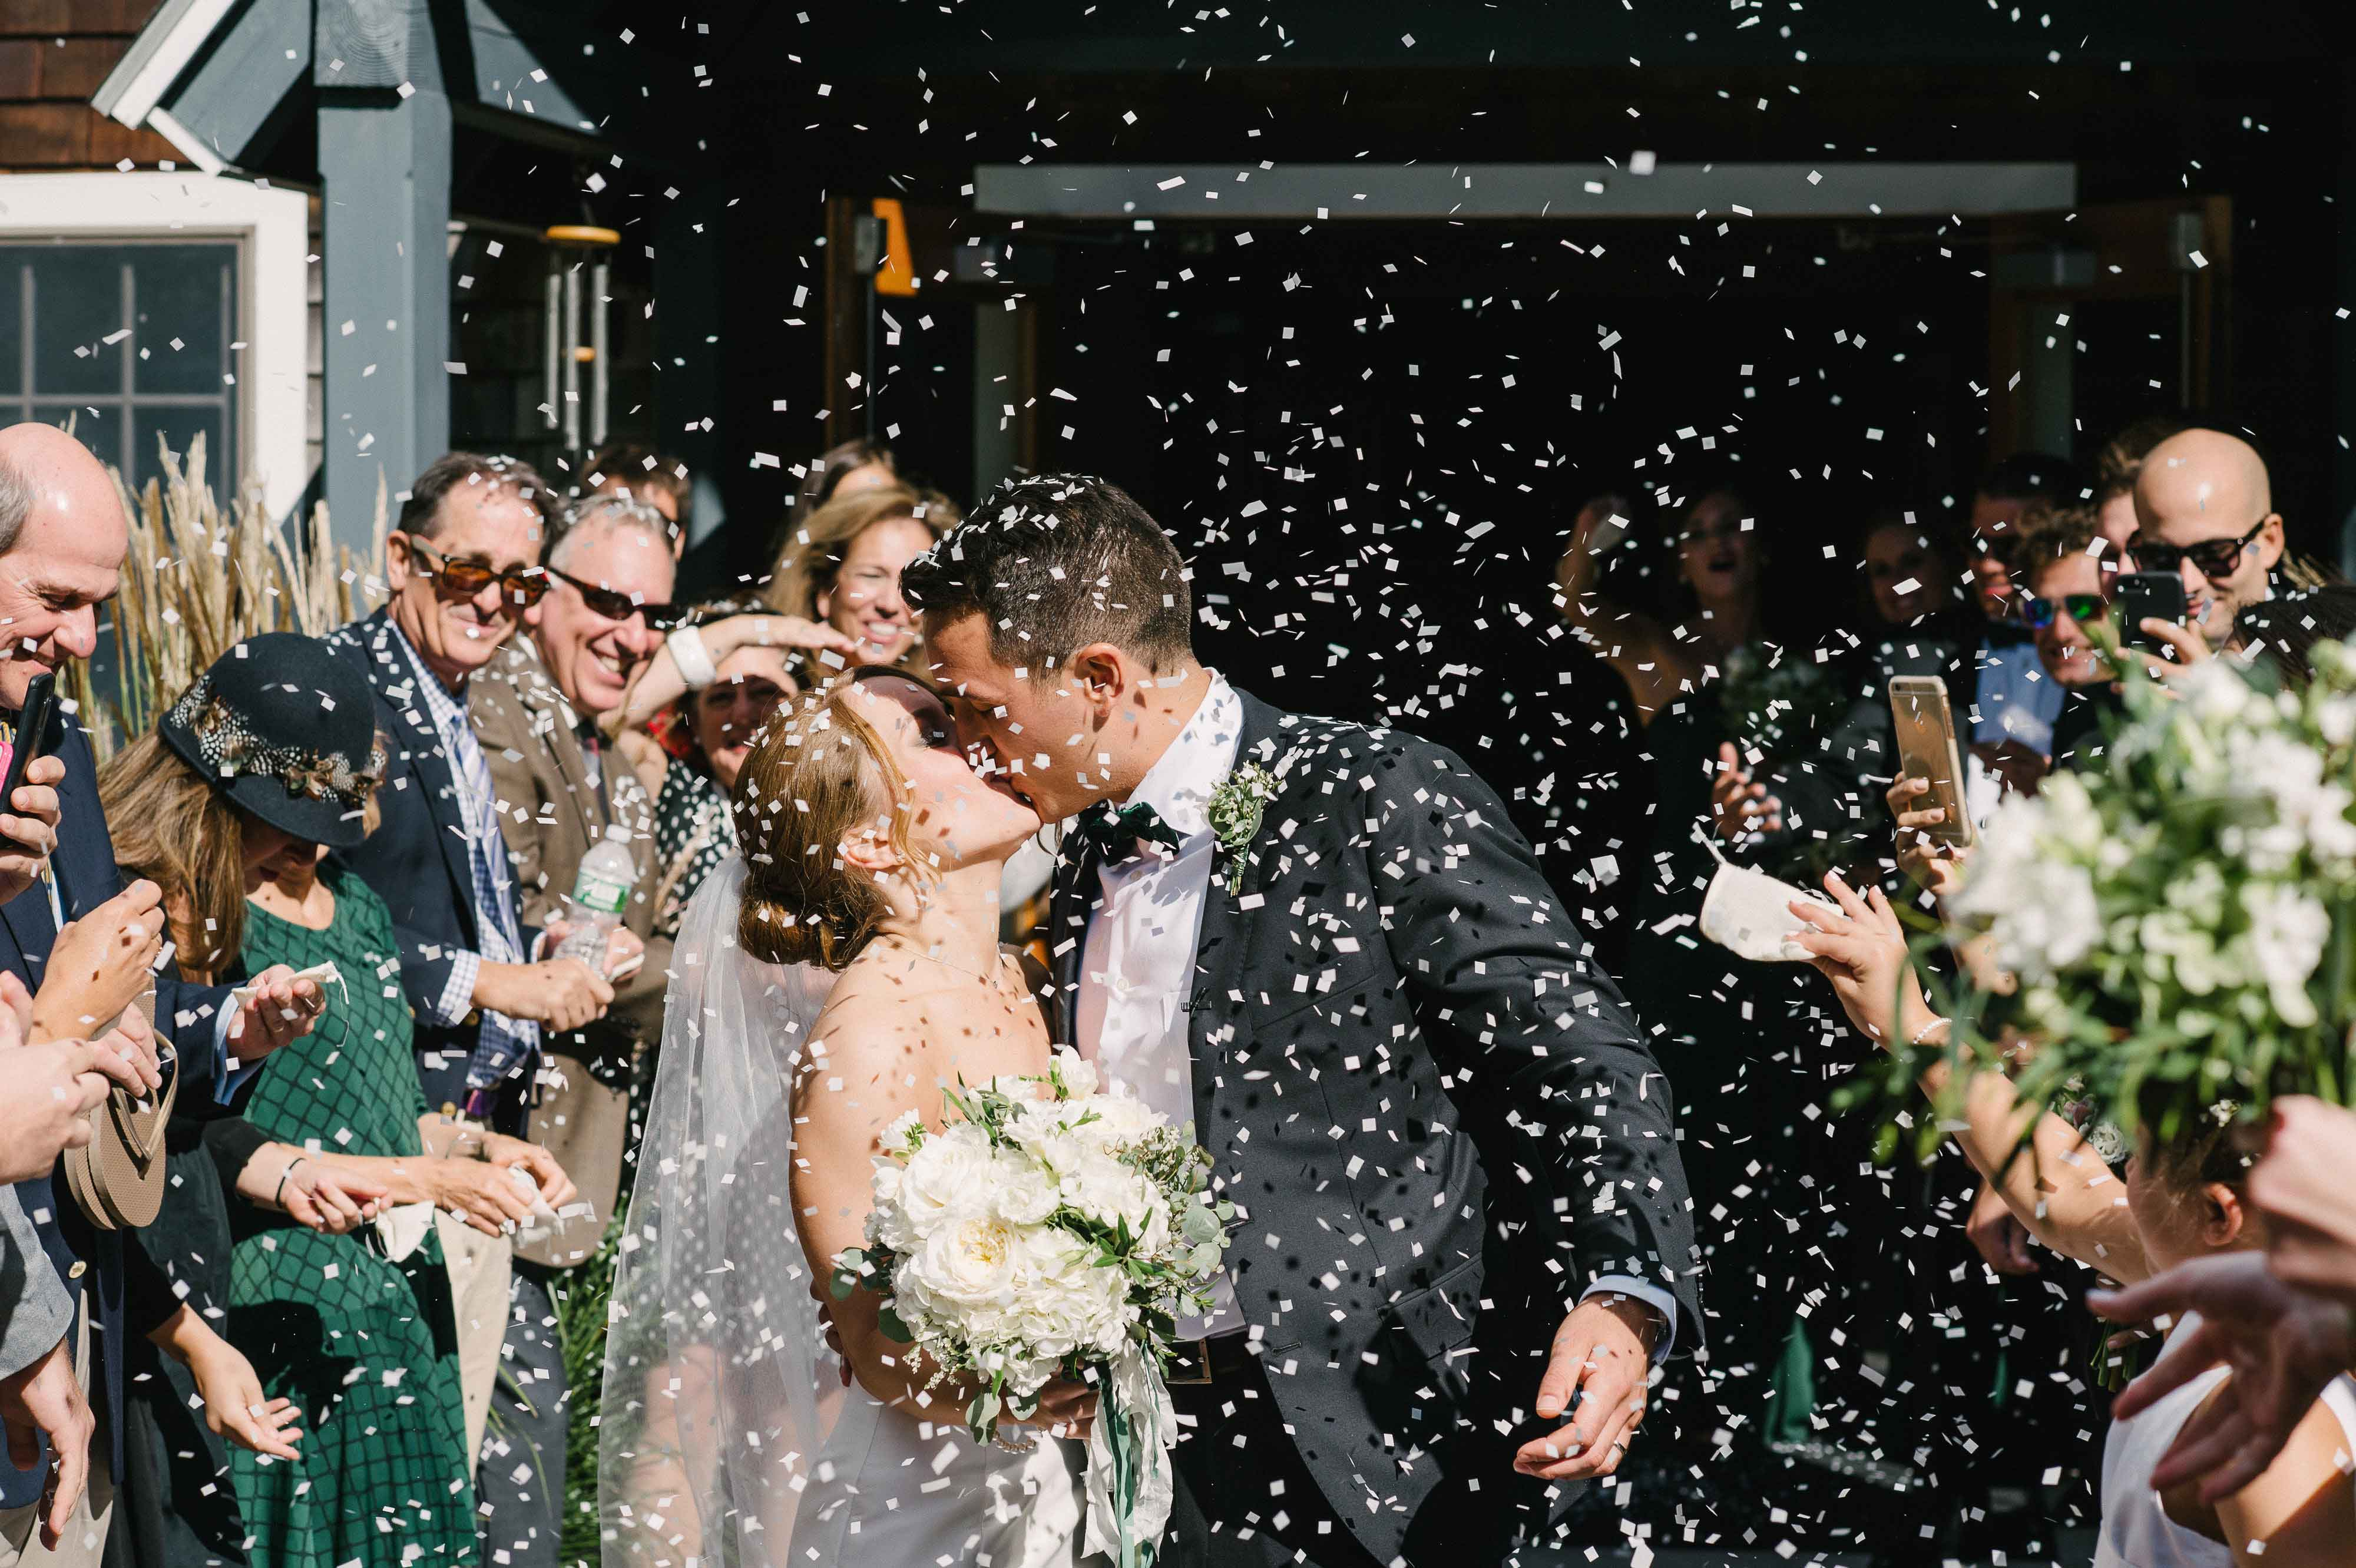 wedding details guests don't care about don't stress